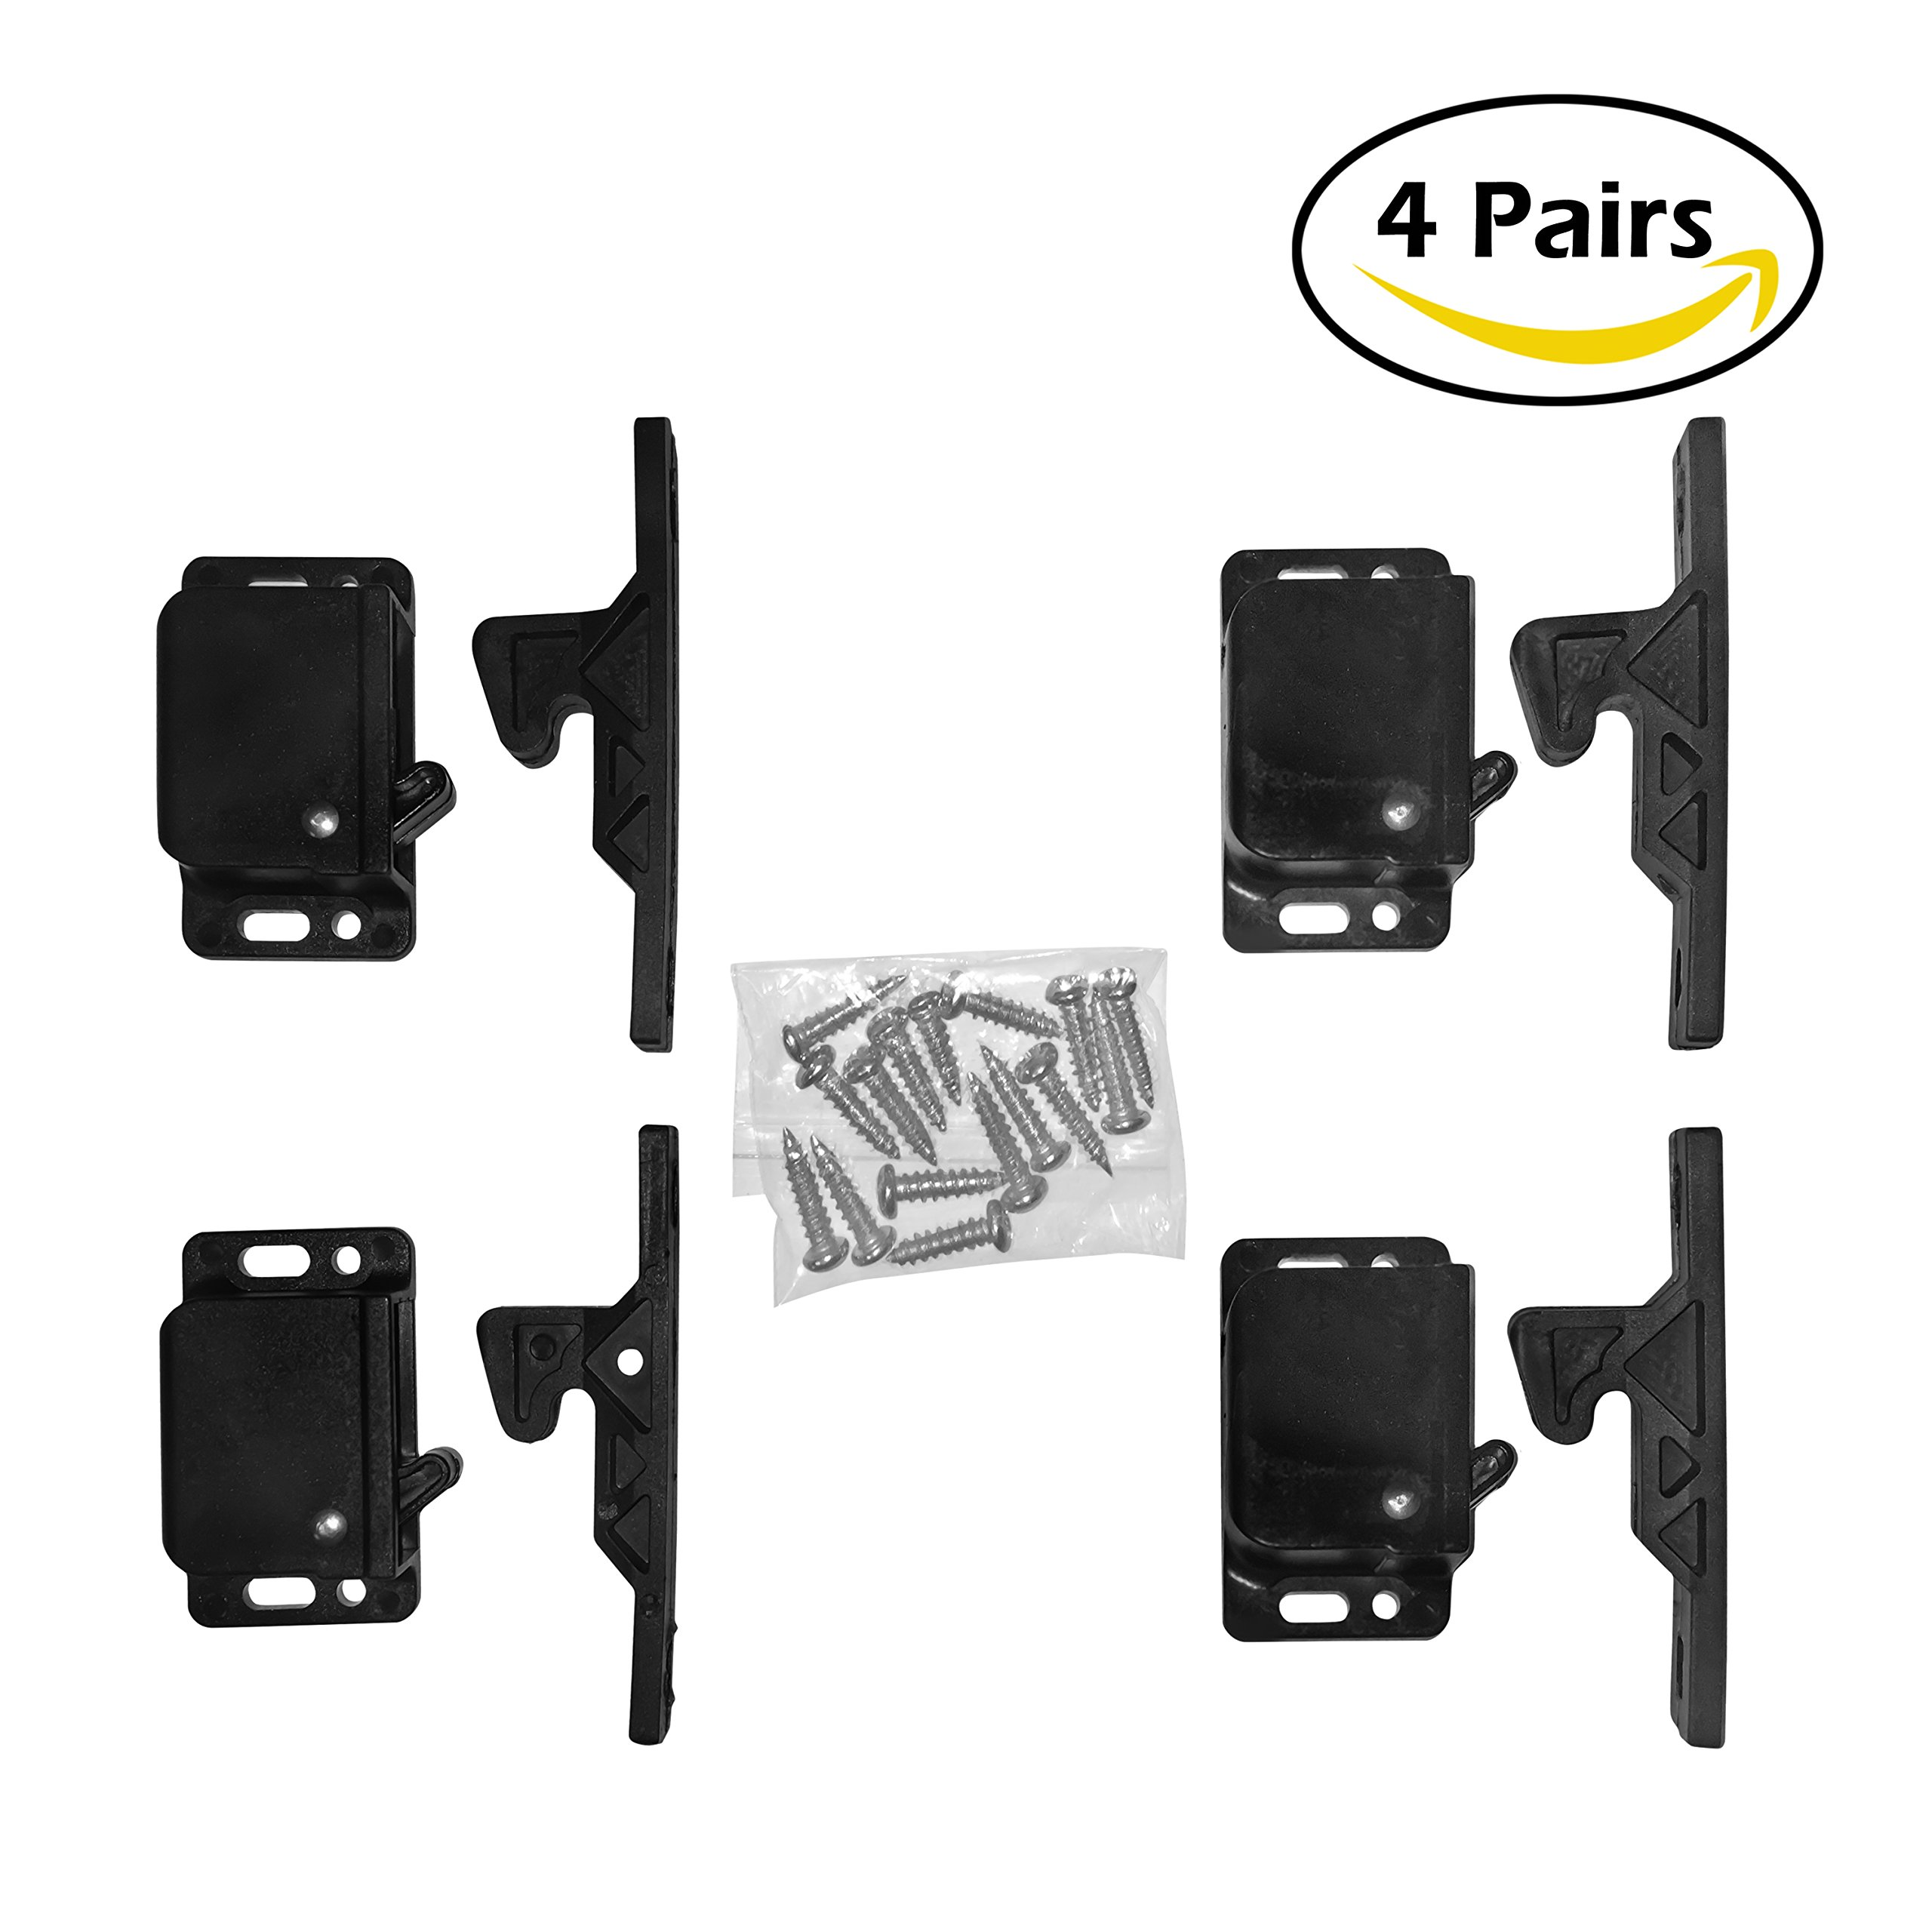 Camp'N -4 Pair- Push Catch - Latch - Grabber - Holder for RV Cabinet Doors with Mounting Hardware - 5 lbs Pull Force - Perfect for RV, Trailer, Camper, Motor Home, Cargo Trailer - OEM Replacement